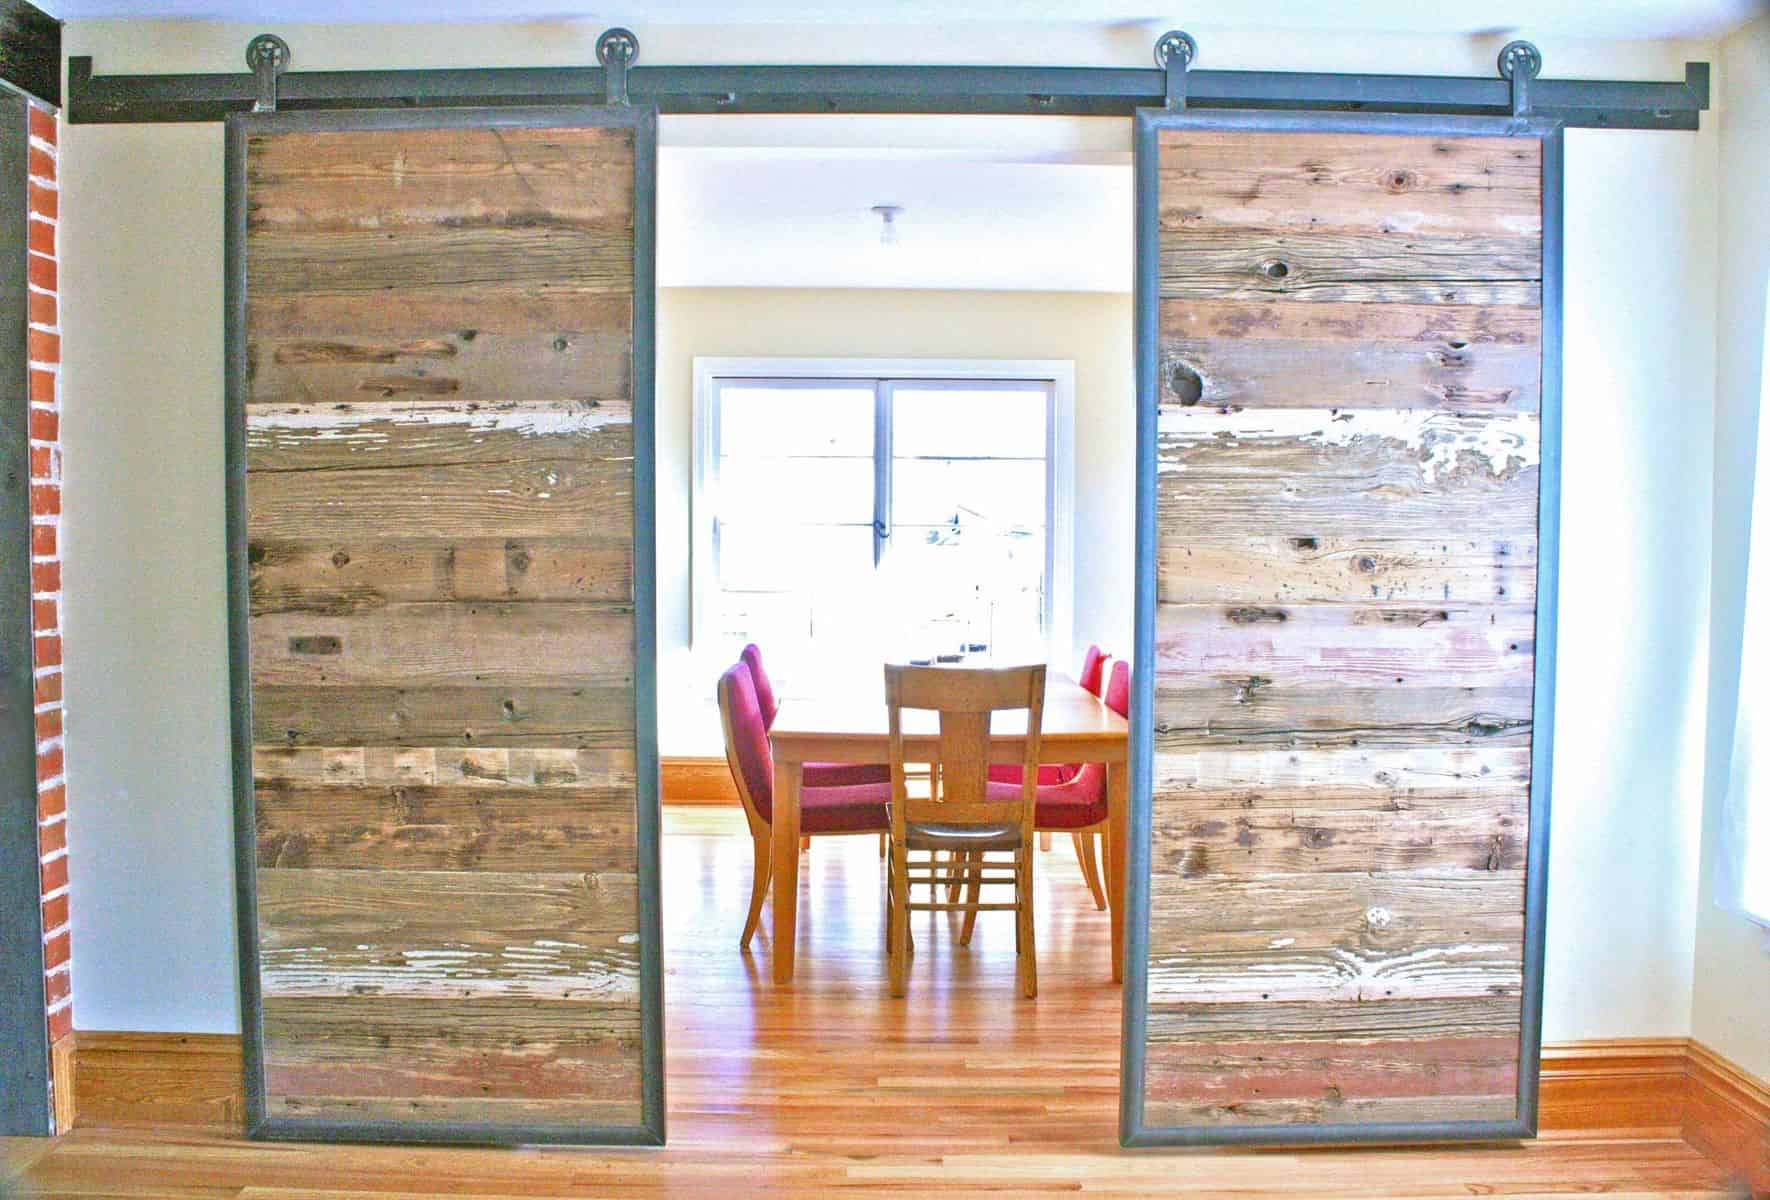 You can choose to use different barn doors for a less traditional look that still has the charming appeal barn doors have.